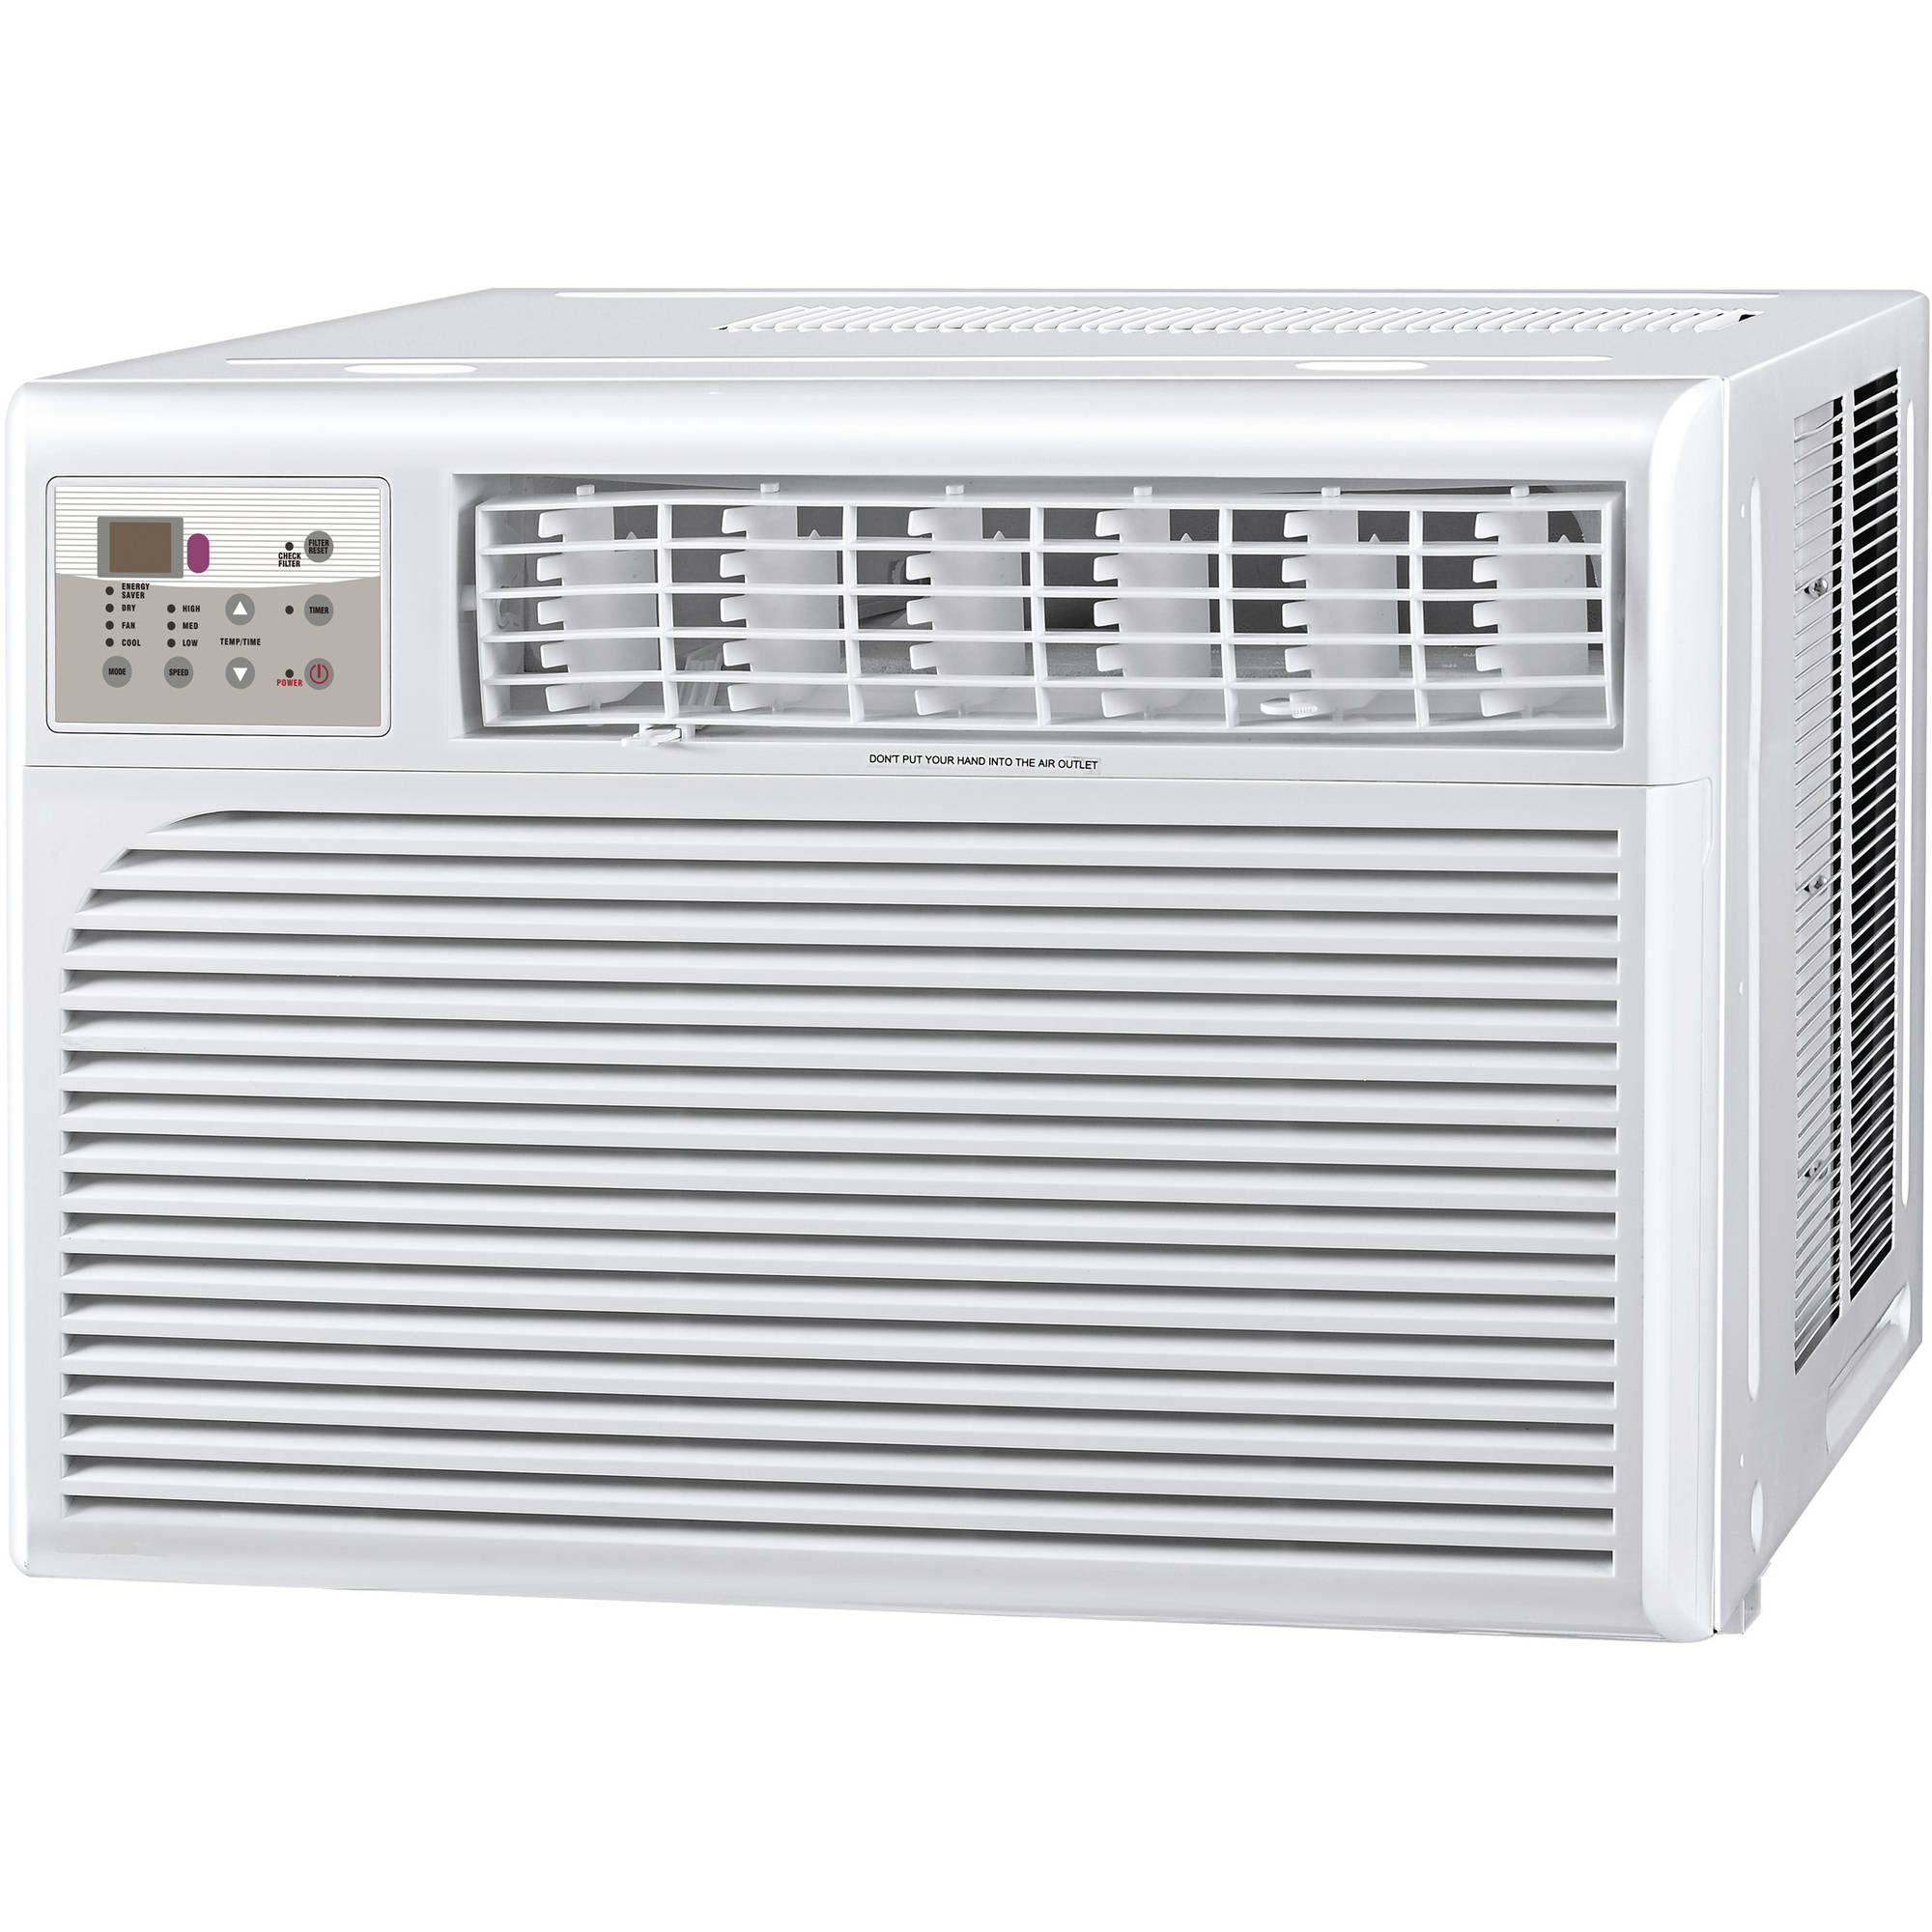 cool living clclyw35c1a 12000btu room air conditioner with digital display and remote white walmartcom